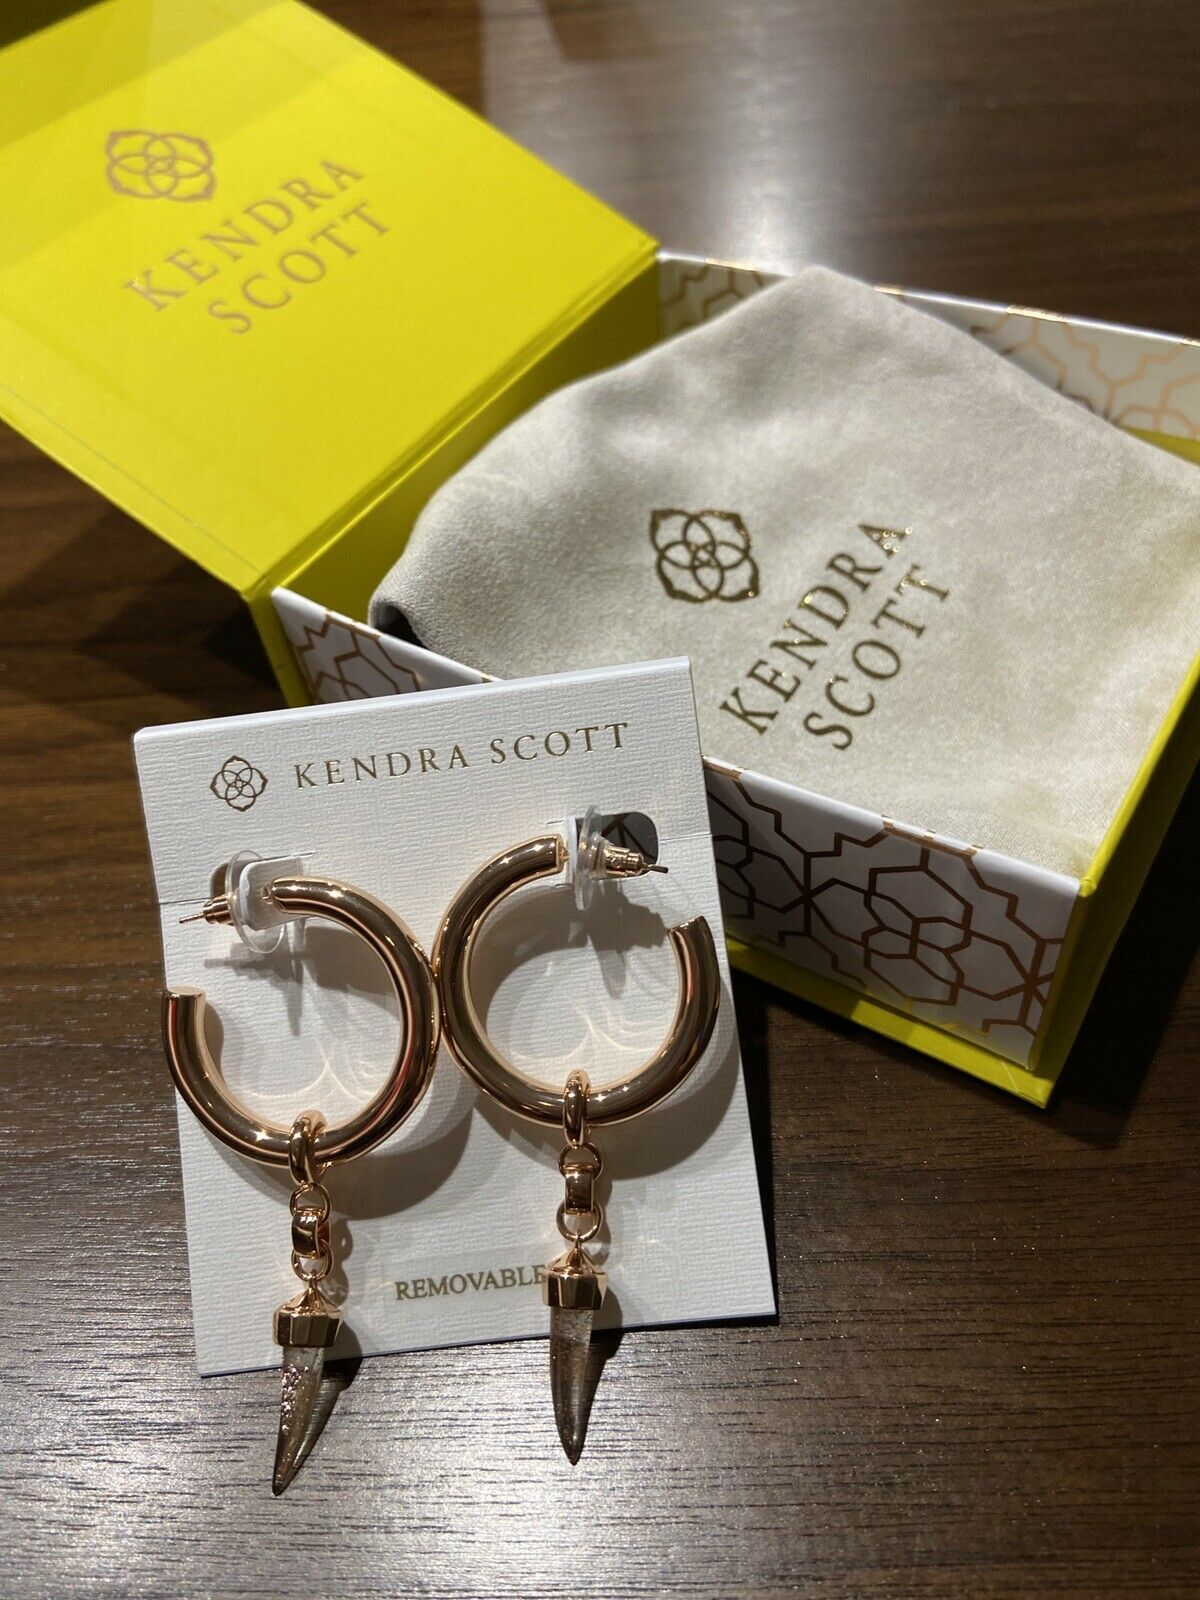 - Kendra Scott Earrings - Samuel Rose Gold Charm Hoops In Rose Gold Dusted Mix